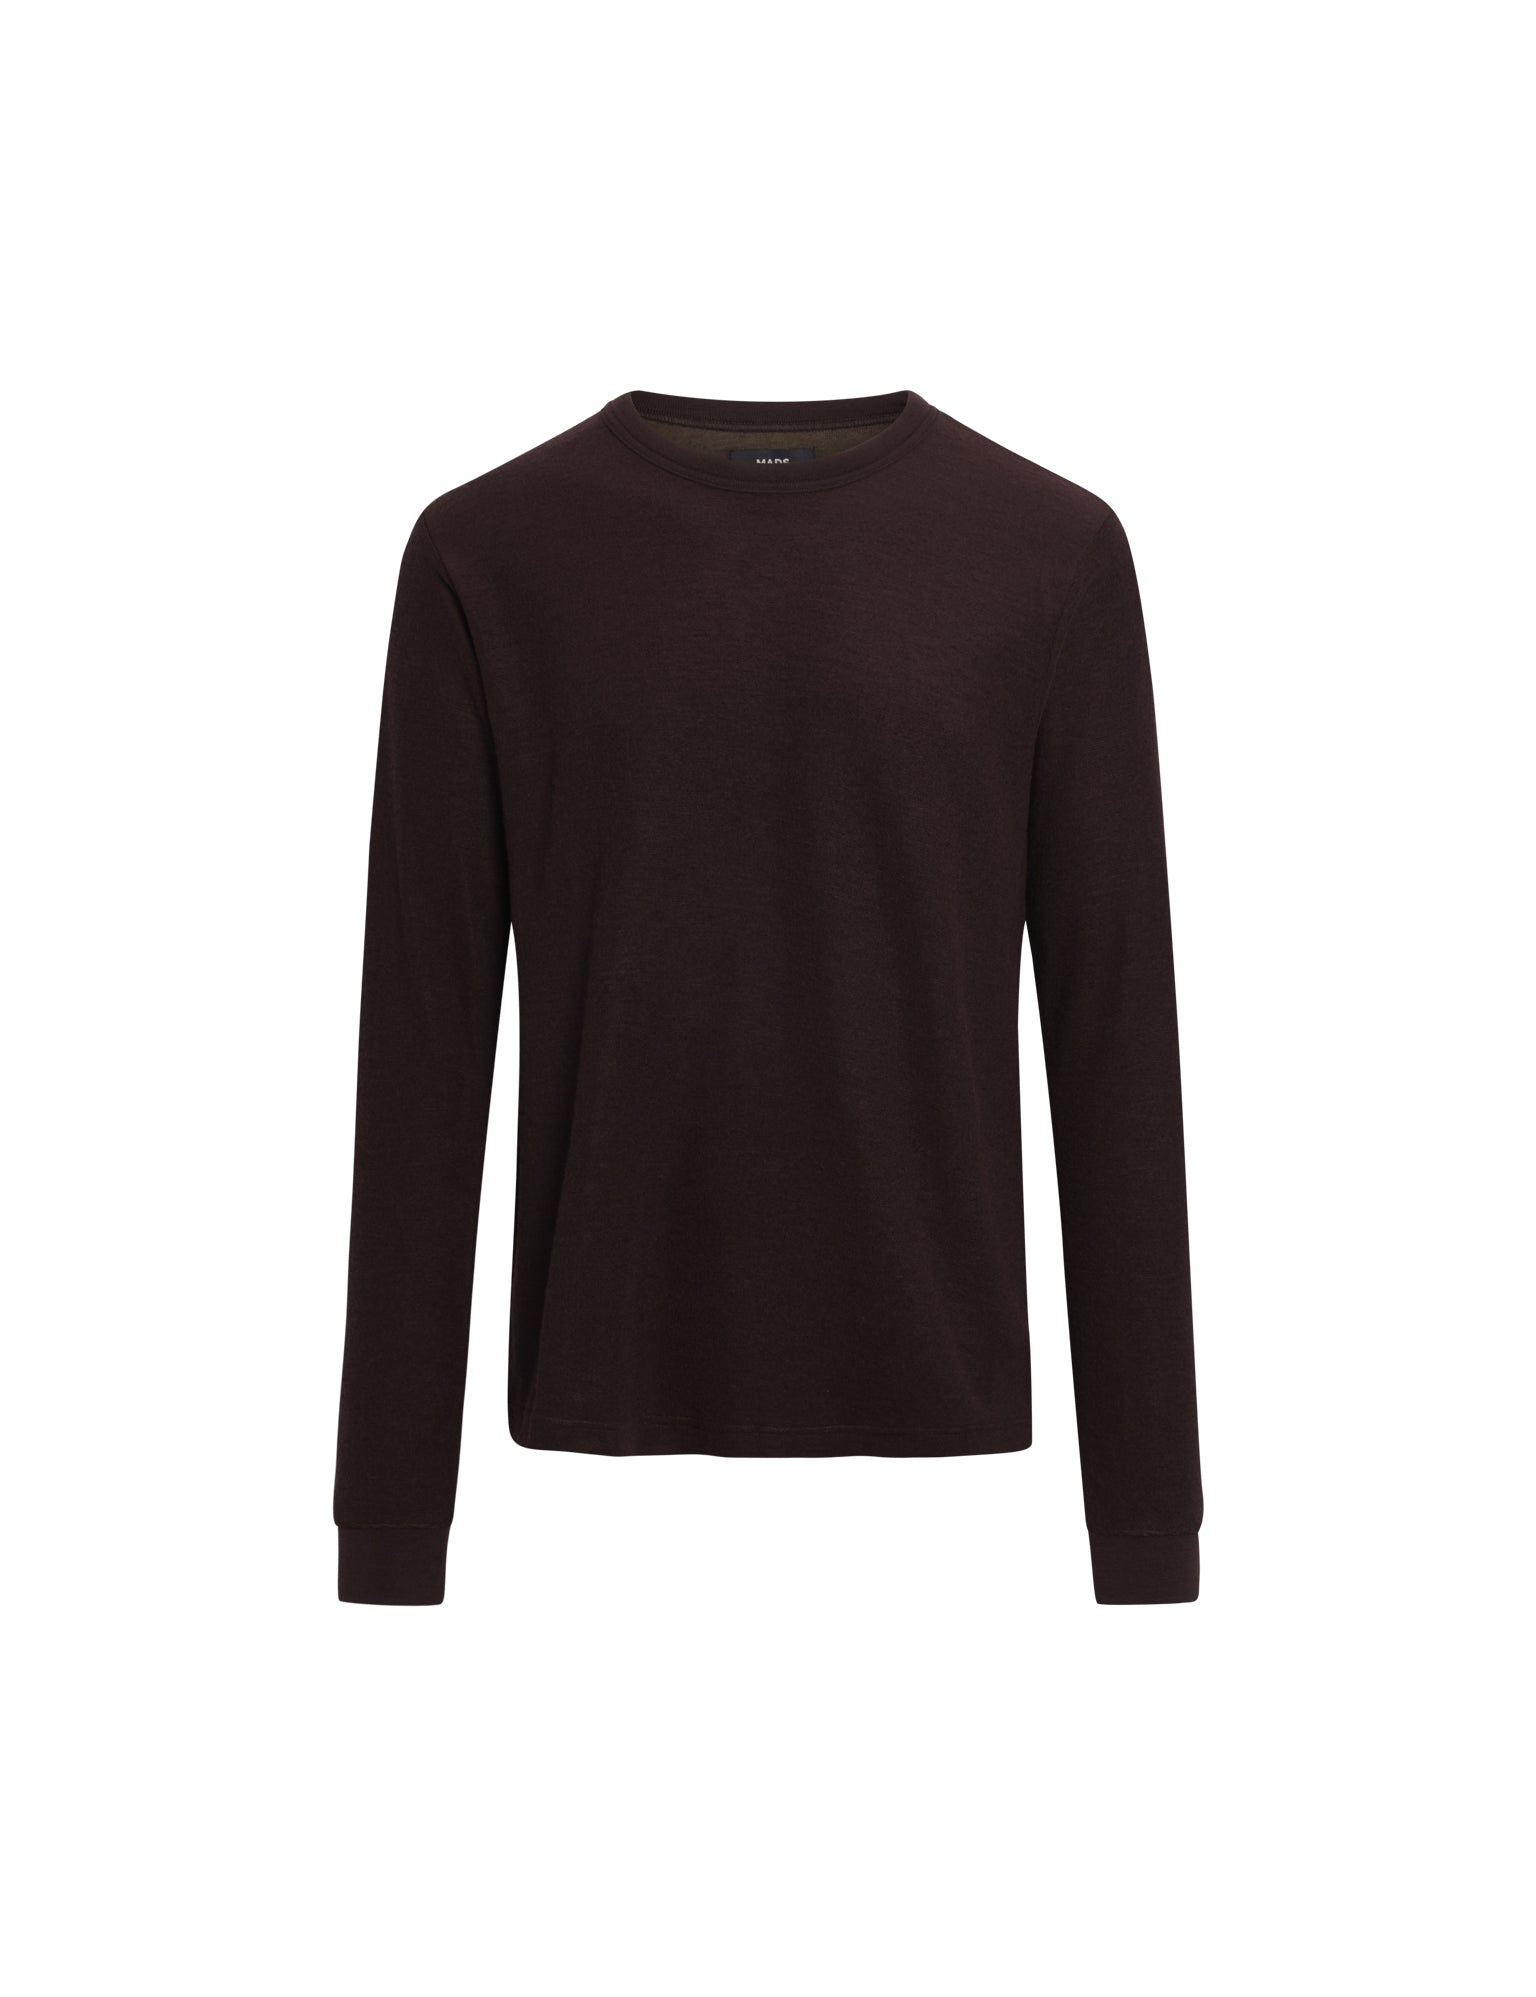 Wool Jersey Twin LS, Demitasse